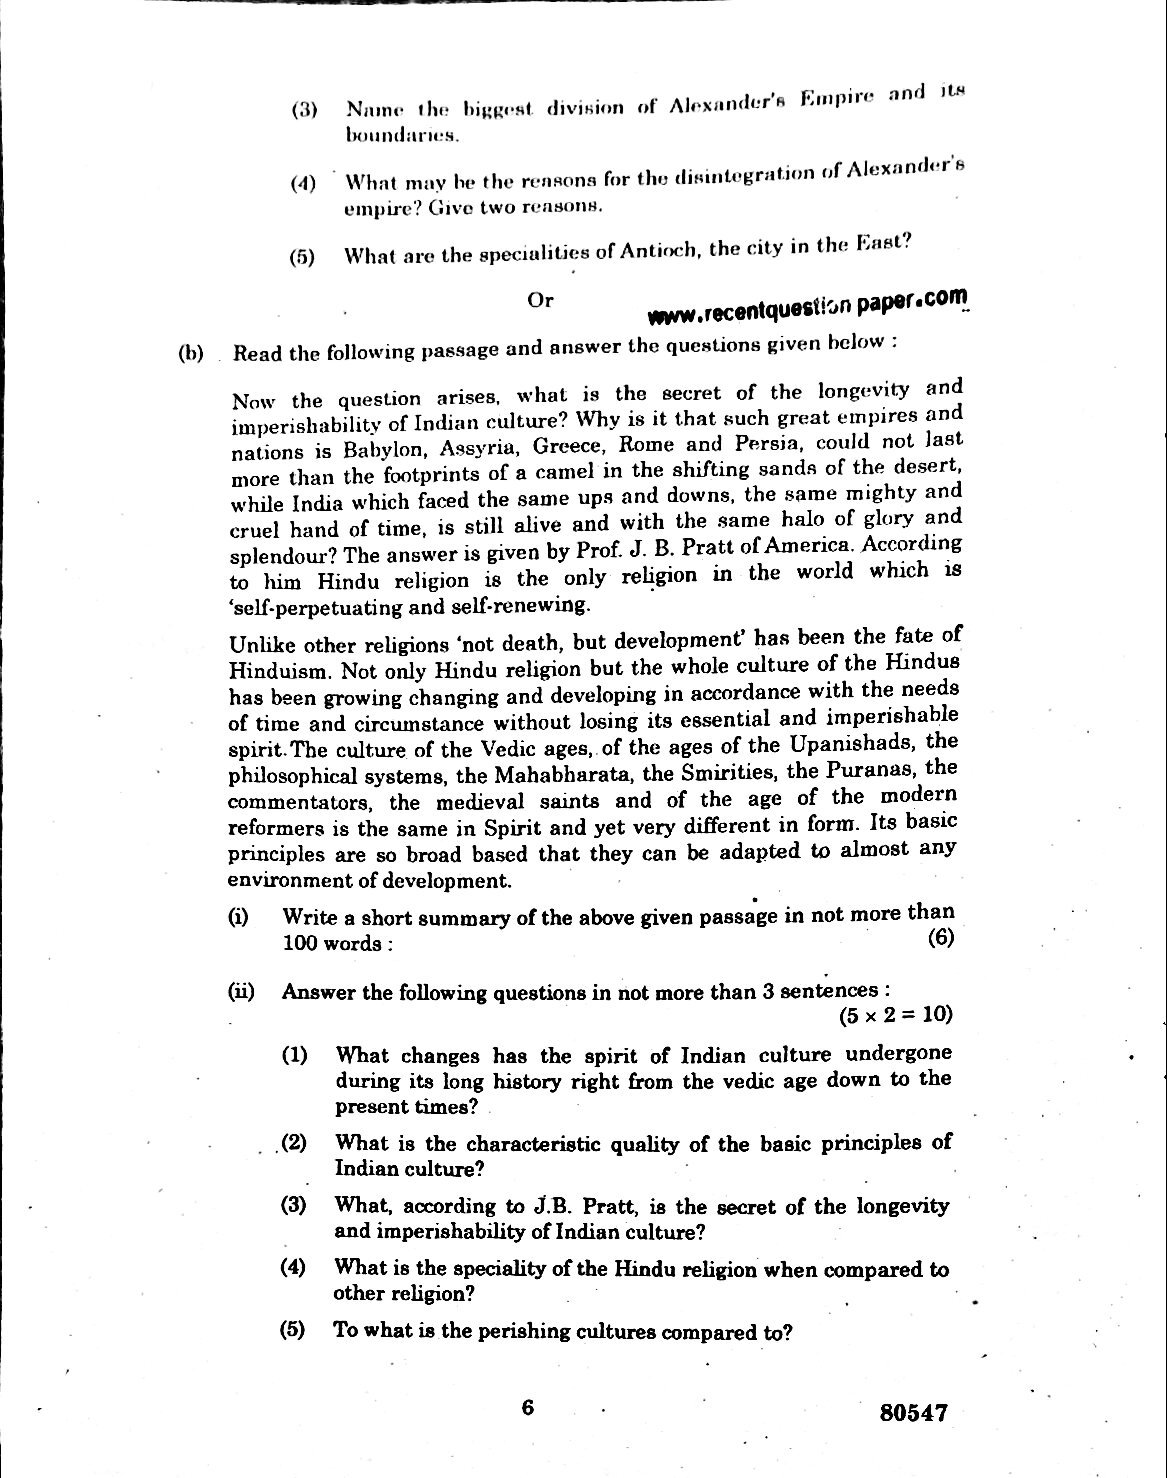 HS6251 TECHNICAL ENGLISH-II 5 - Recent Question Paper